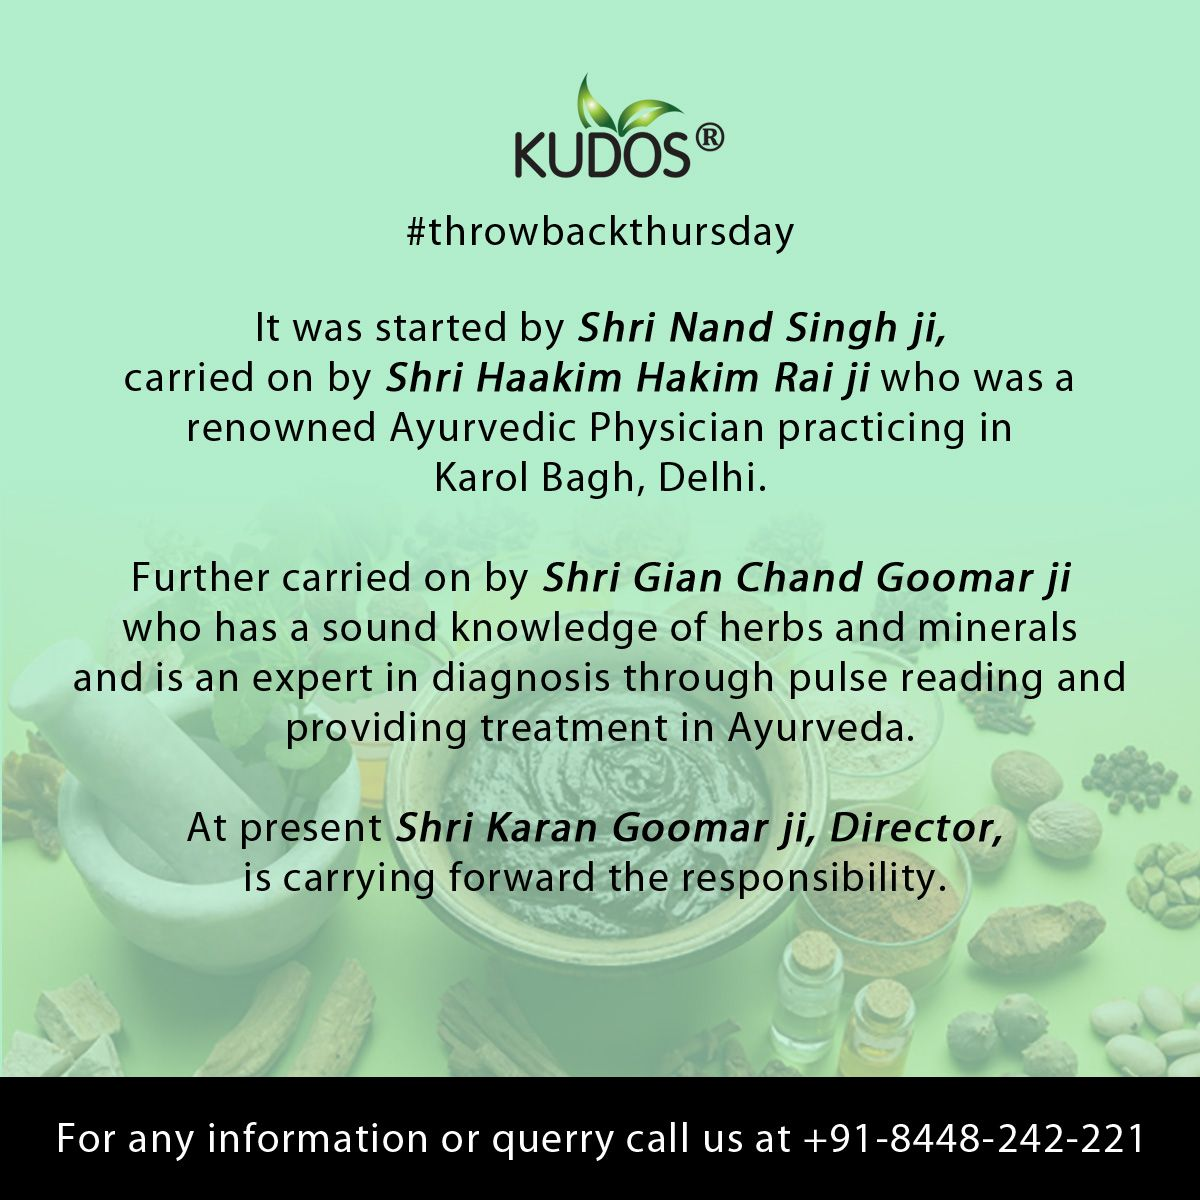 About- KUDOS Four generations are working keenly for the development of Ayurveda.